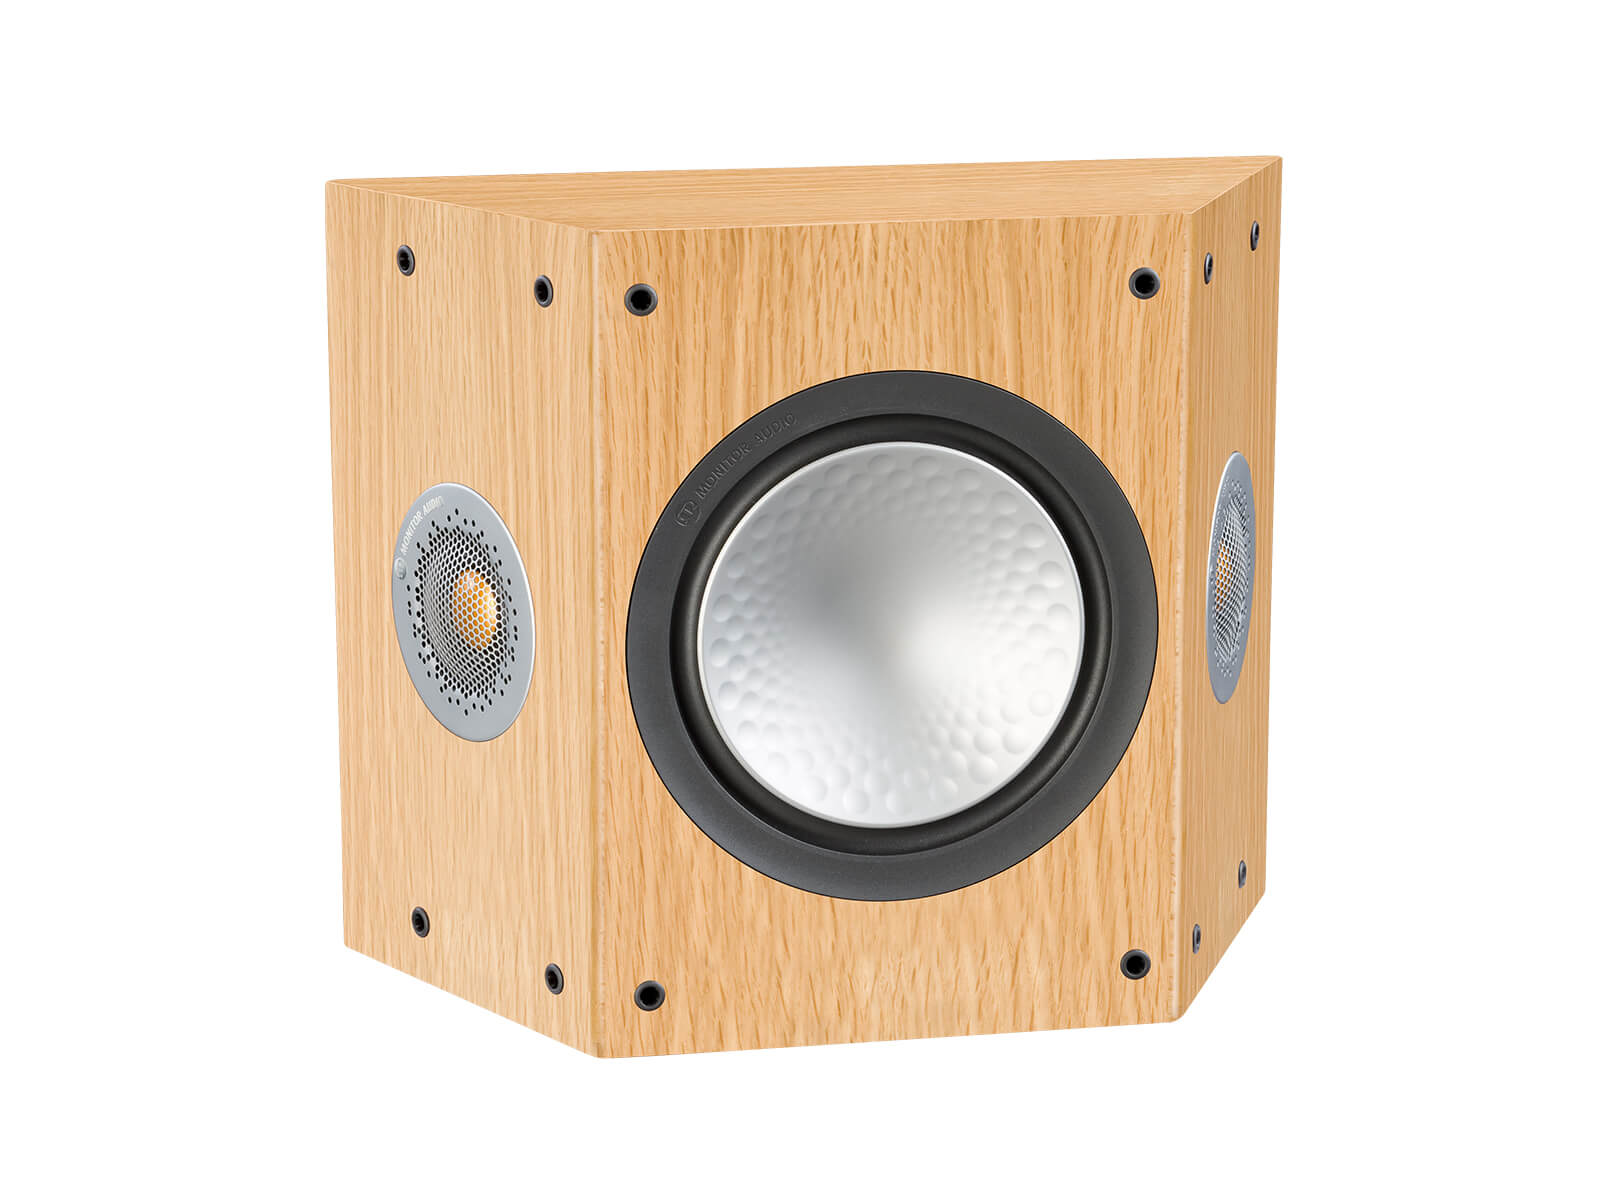 Silver FX, grille-less surround speakers, with a natural oak finish.